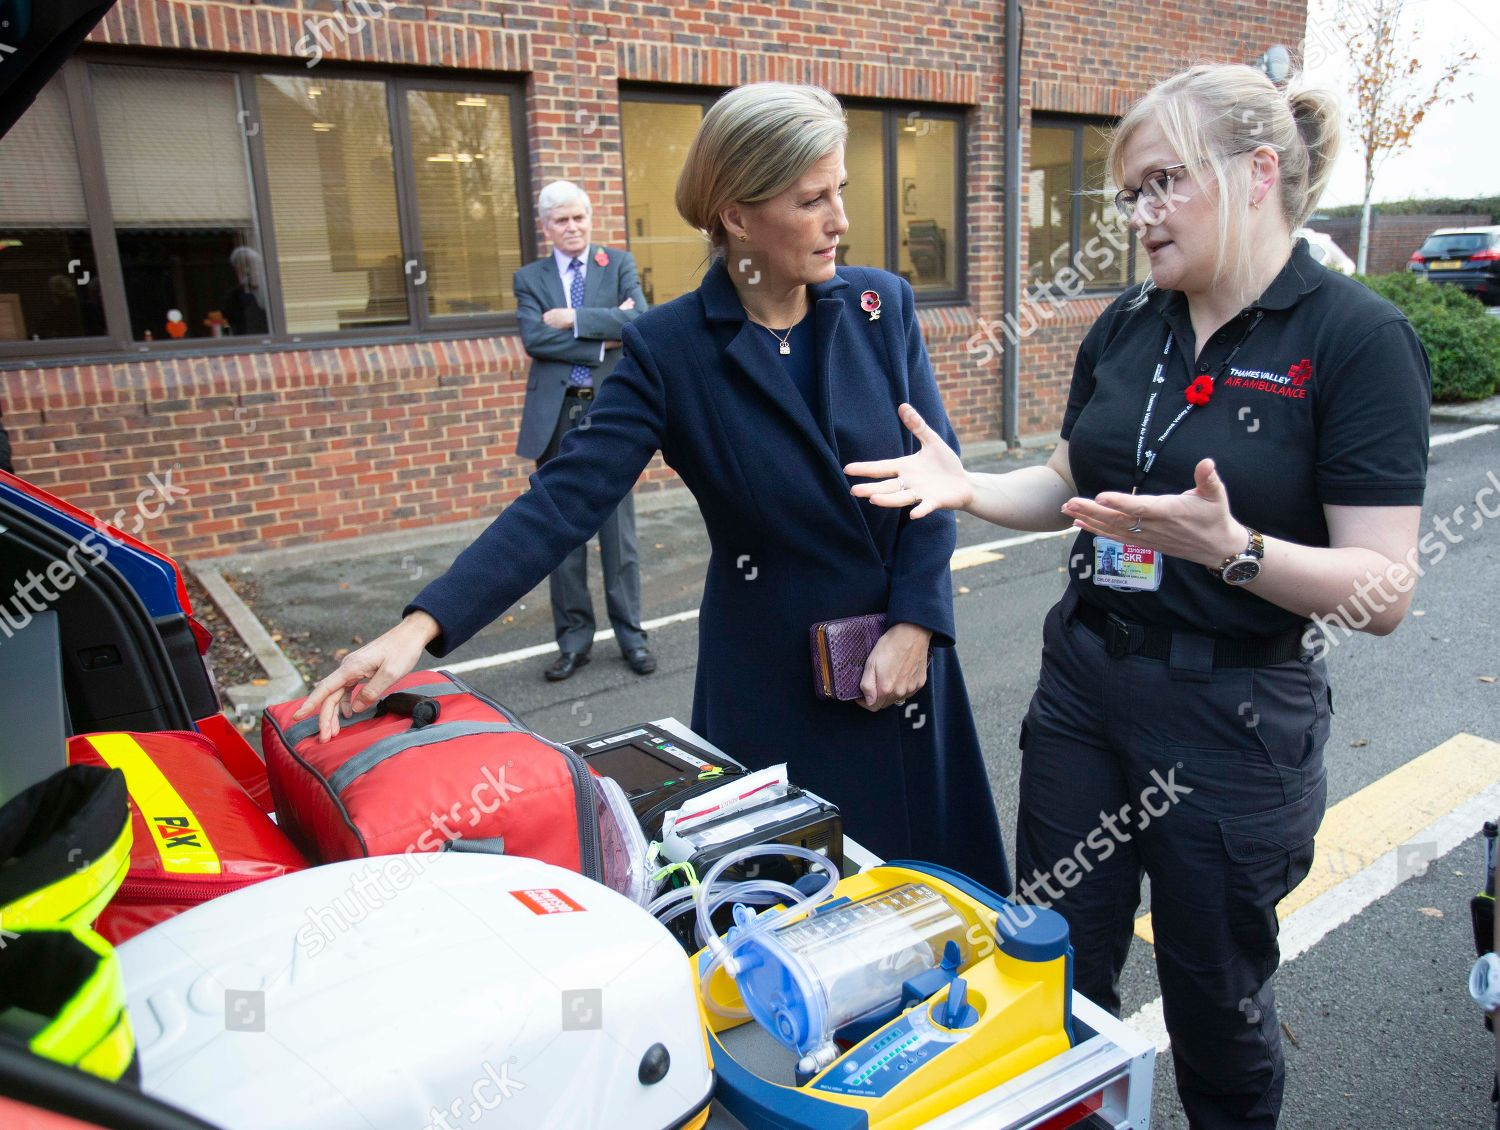 sophie-countess-of-wessex-opens-the-thames-valley-air-ambulance-headquarters-stokenchurch-buckinghamshire-uk-shutterstock-editorial-9968468c.jpg